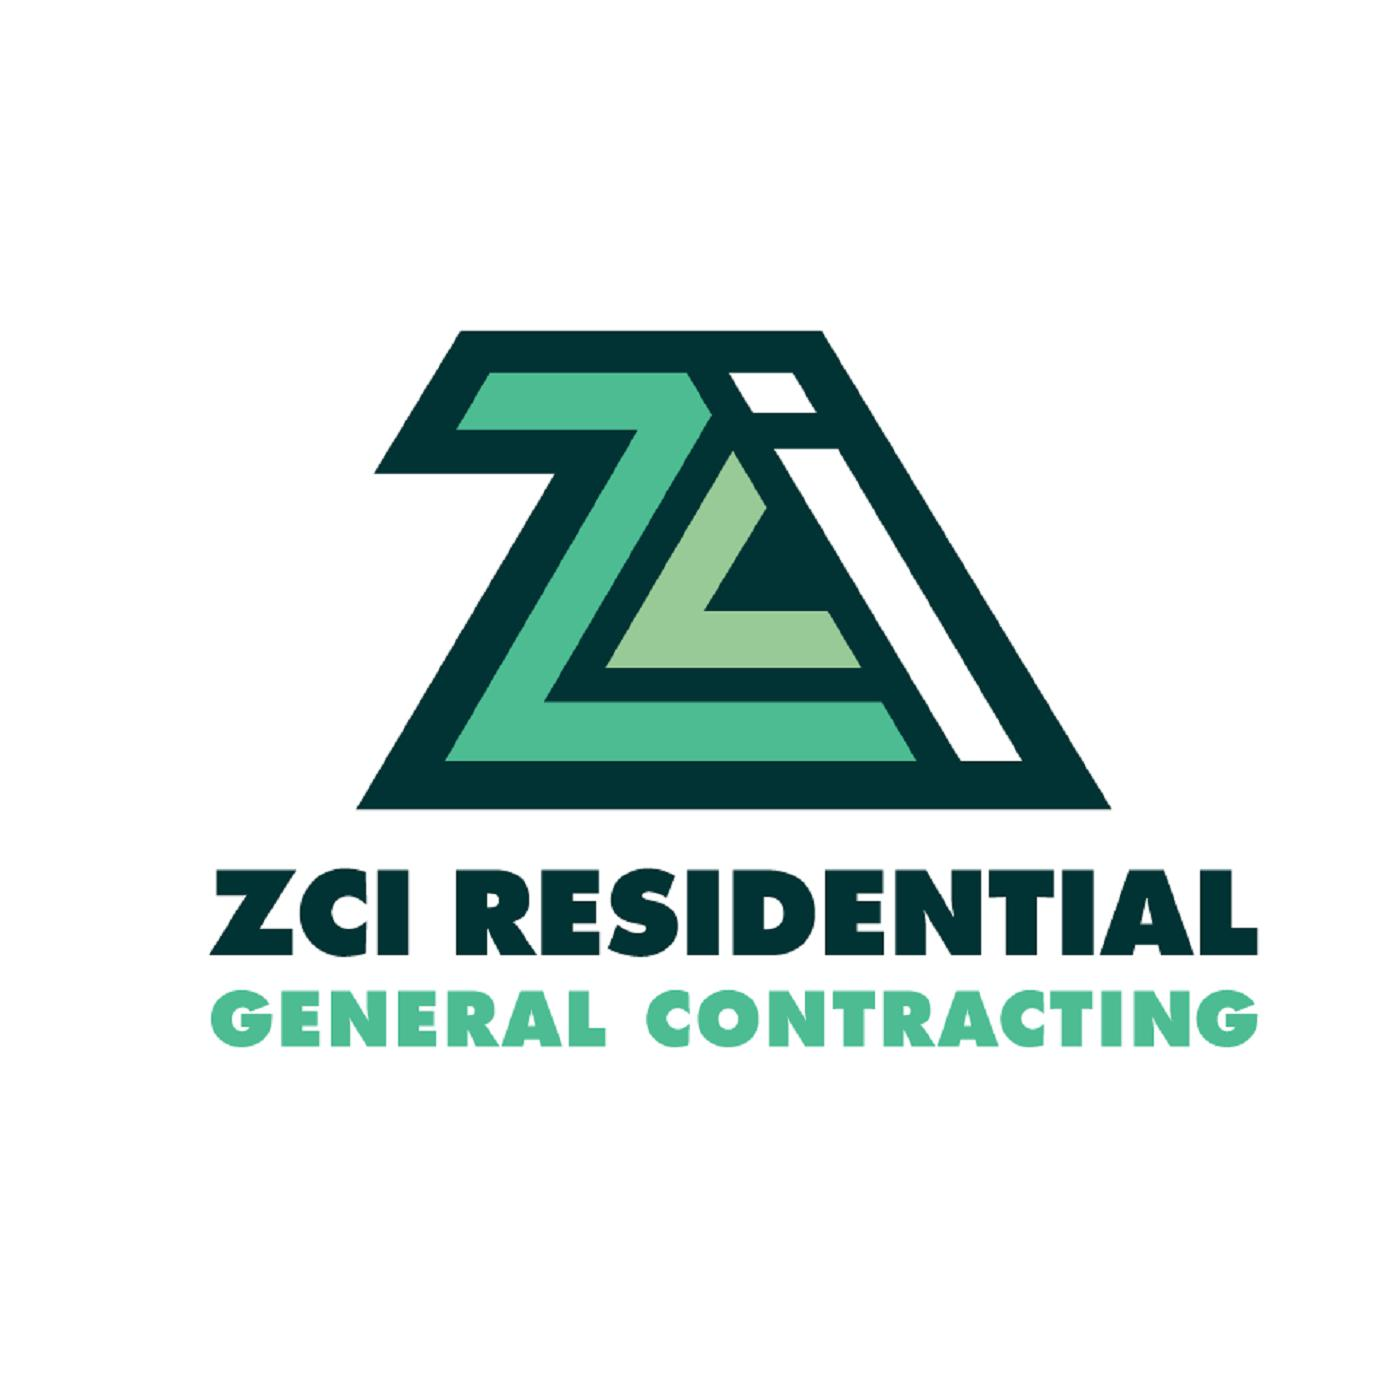 ZCI Residential